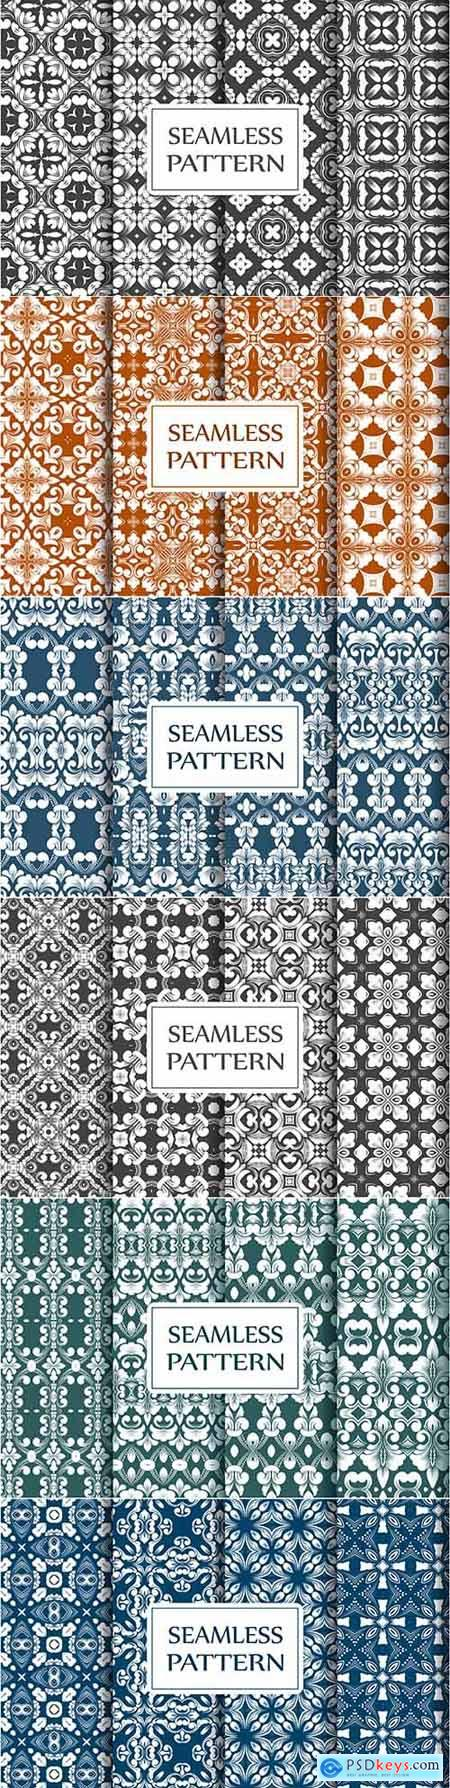 Premium Collection of Seamless Baroque Patterns